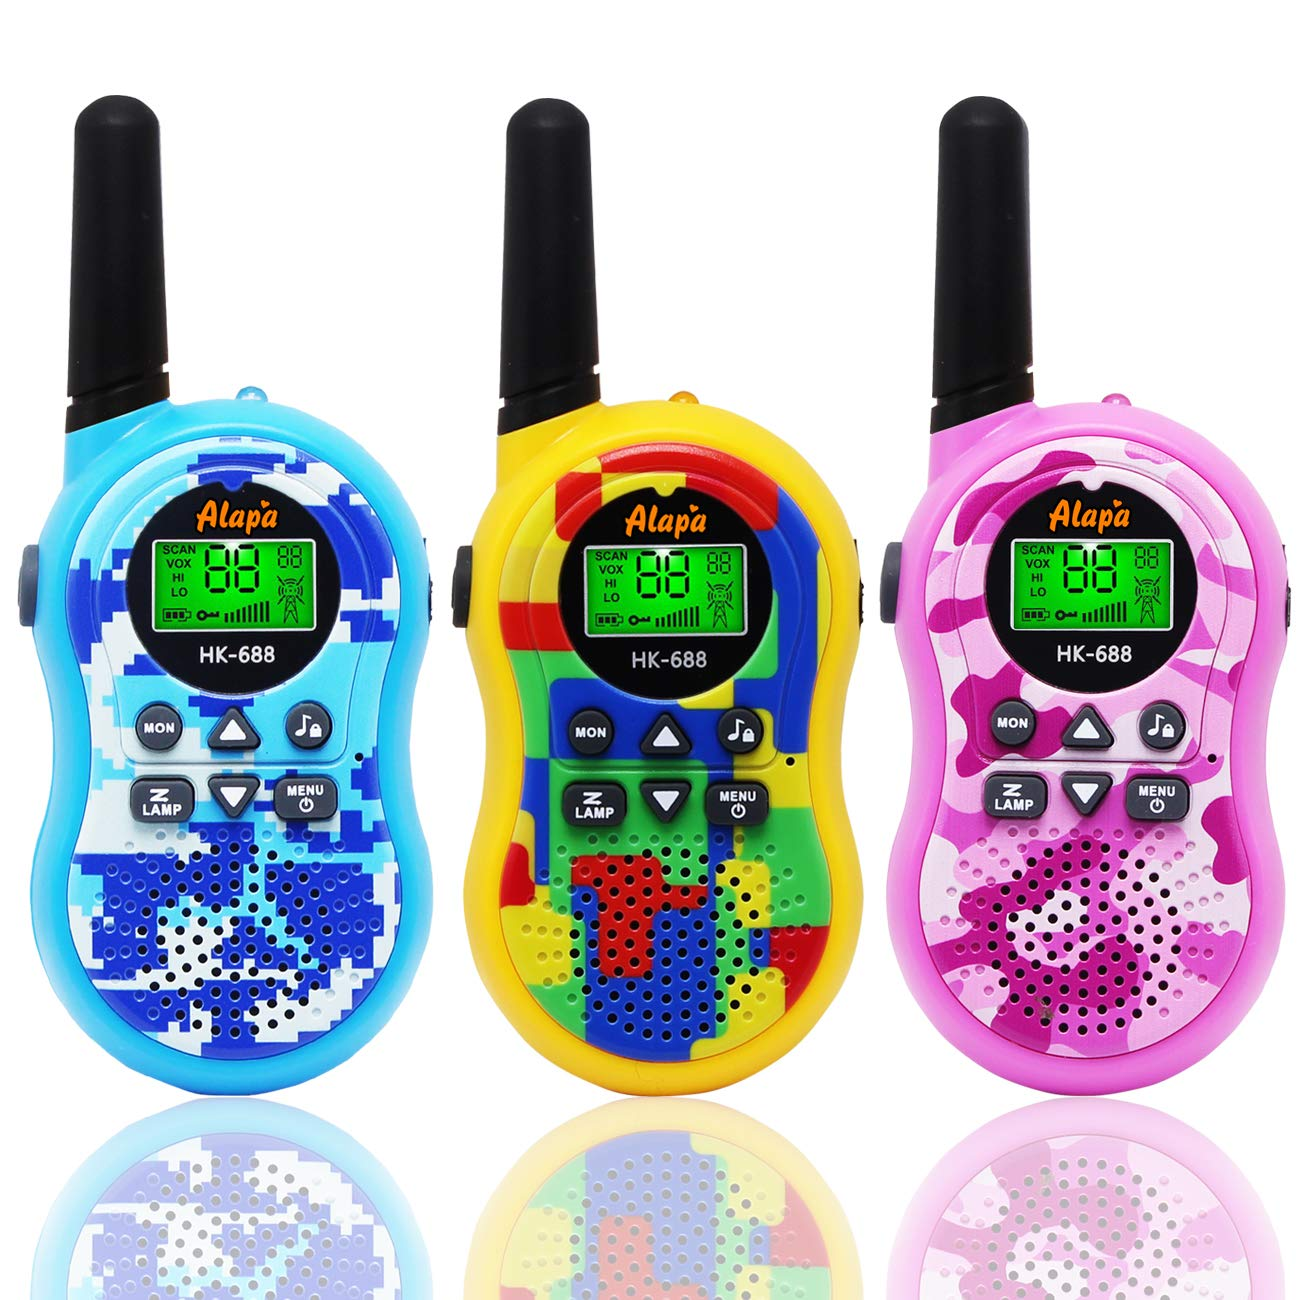 Alapa Walkie Talkies for Kids Voice Activated Walkie Talkies for Adults and Kids 3 Mile Range 2 Way Radio Walkie Talkies Built in Flash Light Camo Exterior Vox (3 Pack) by Alapa (Image #1)